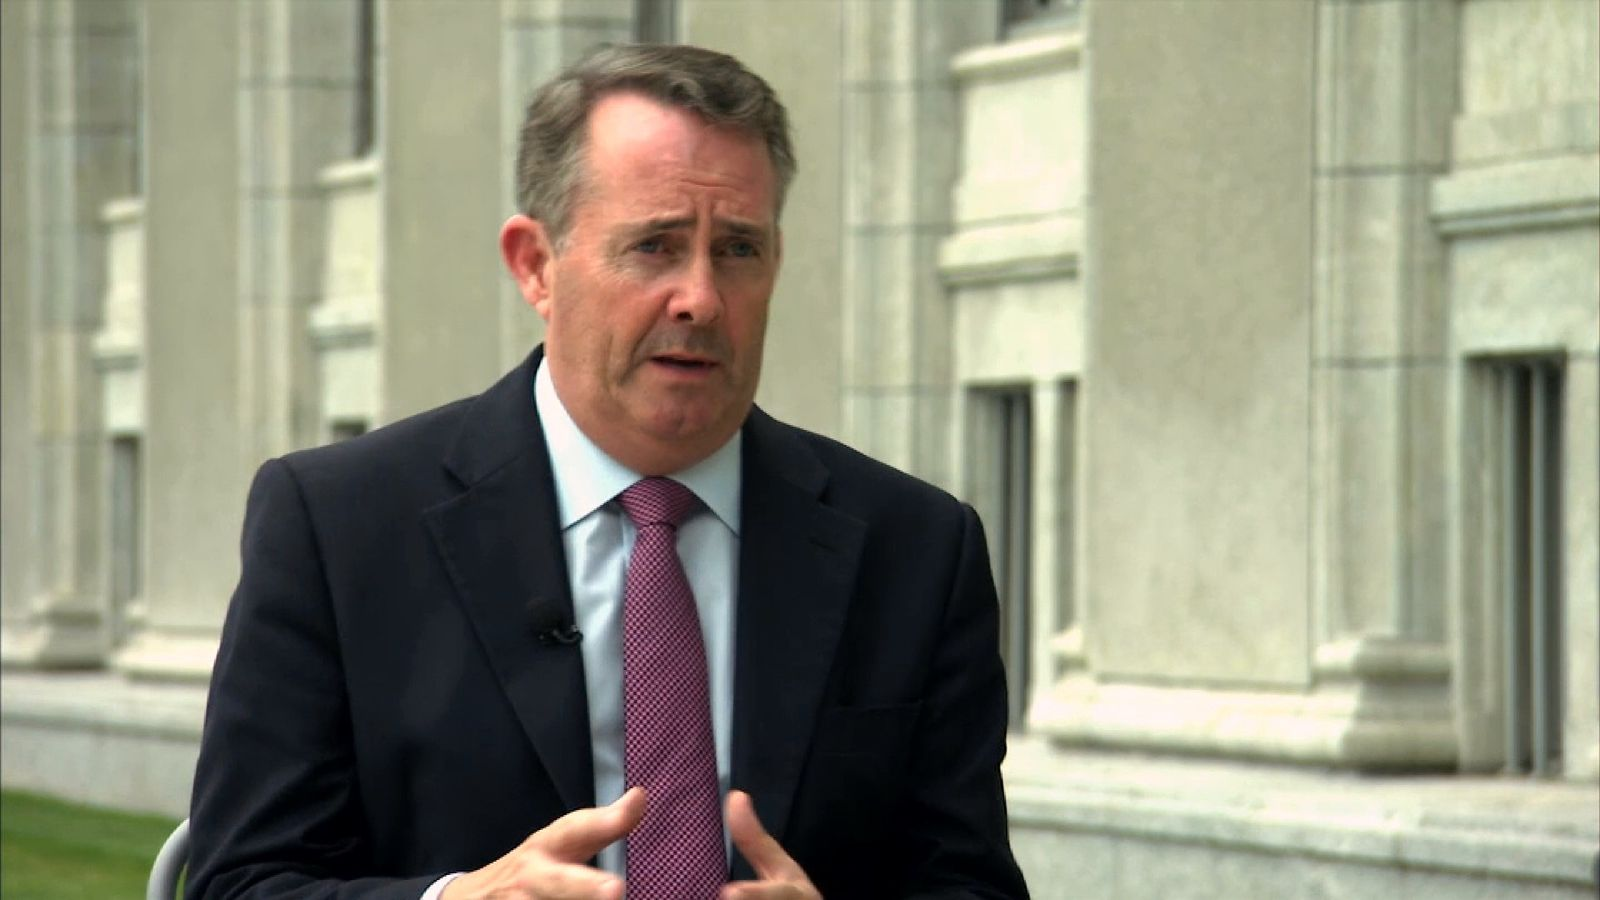 Liam Fox, International Trade Secretary